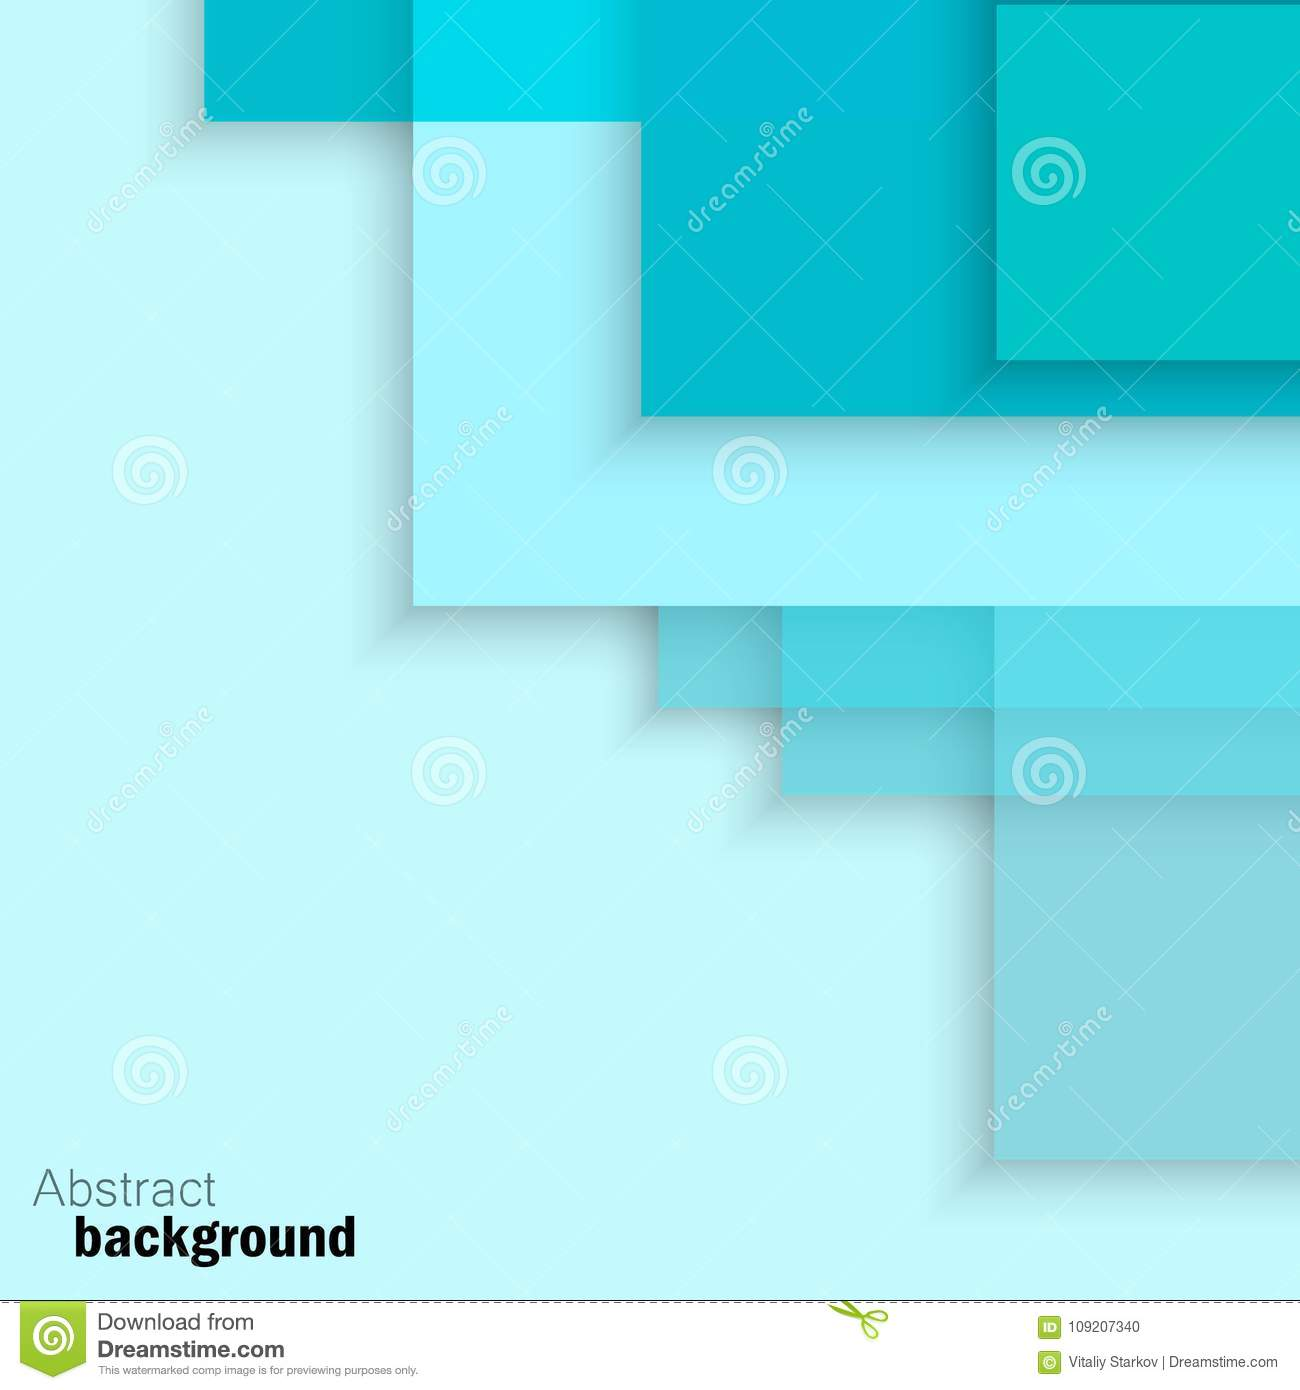 Light Blue Abstract Texture Vector Background Can Be Used